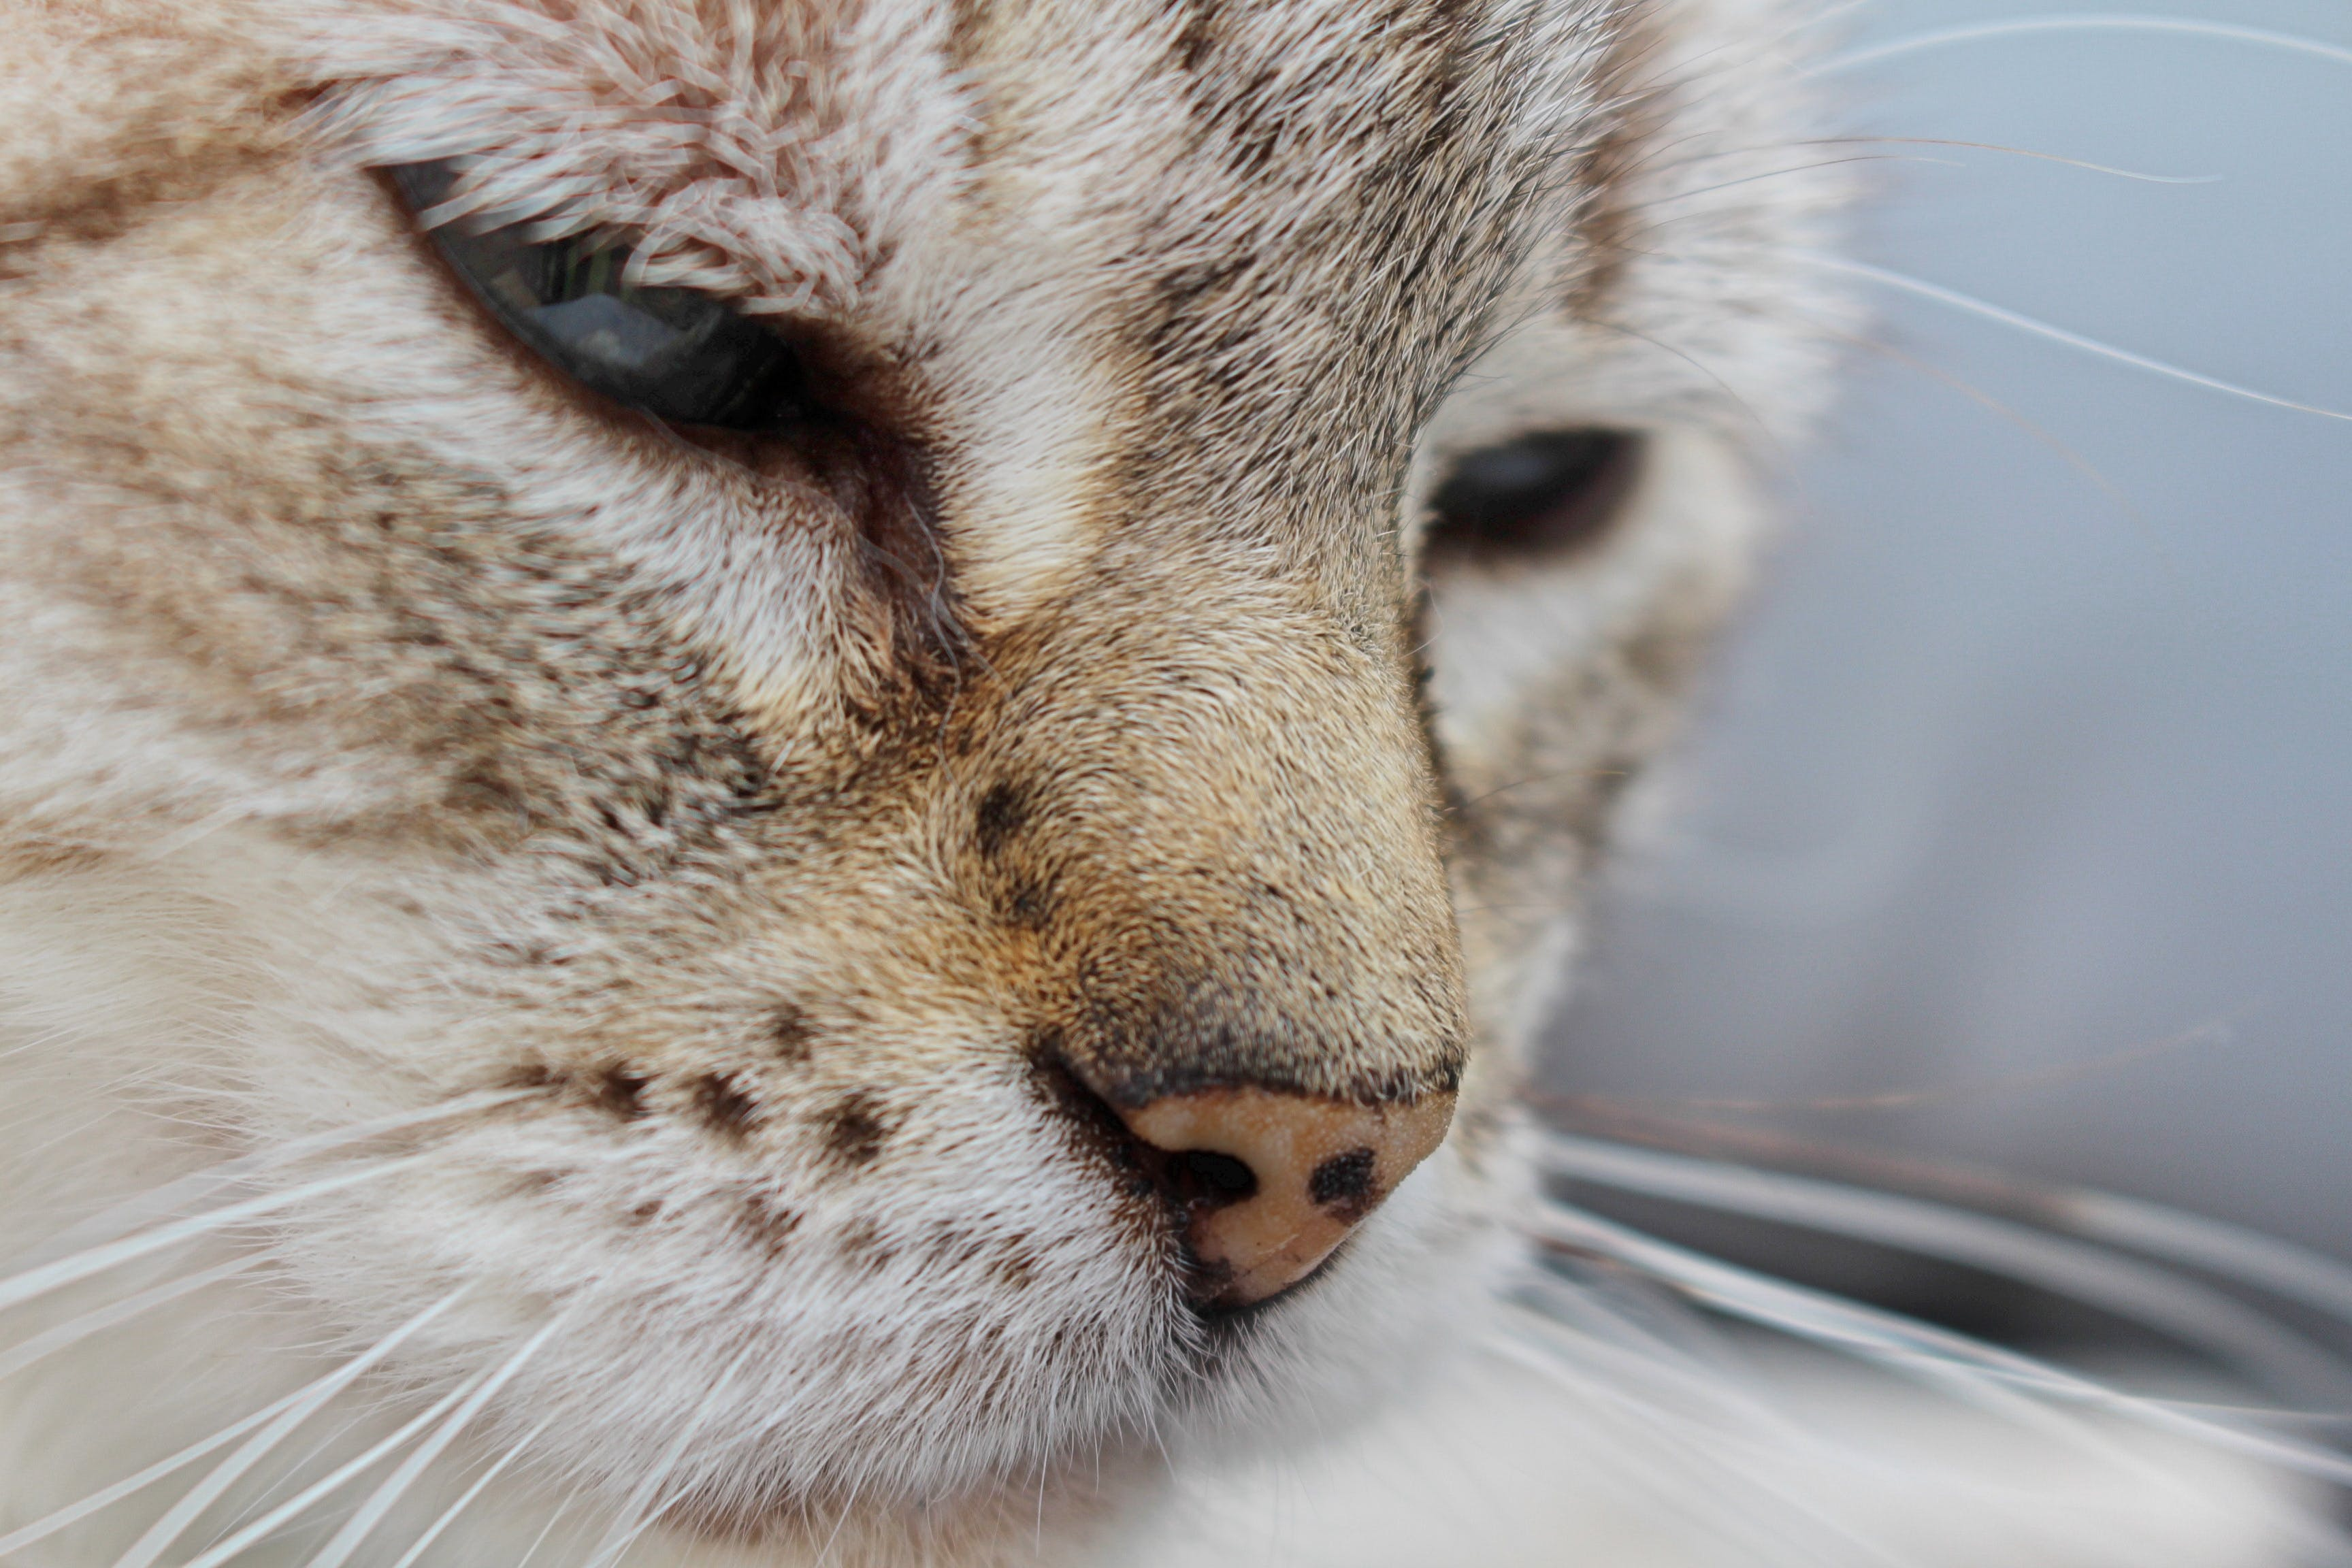 Close Photography Of A Cat's Face